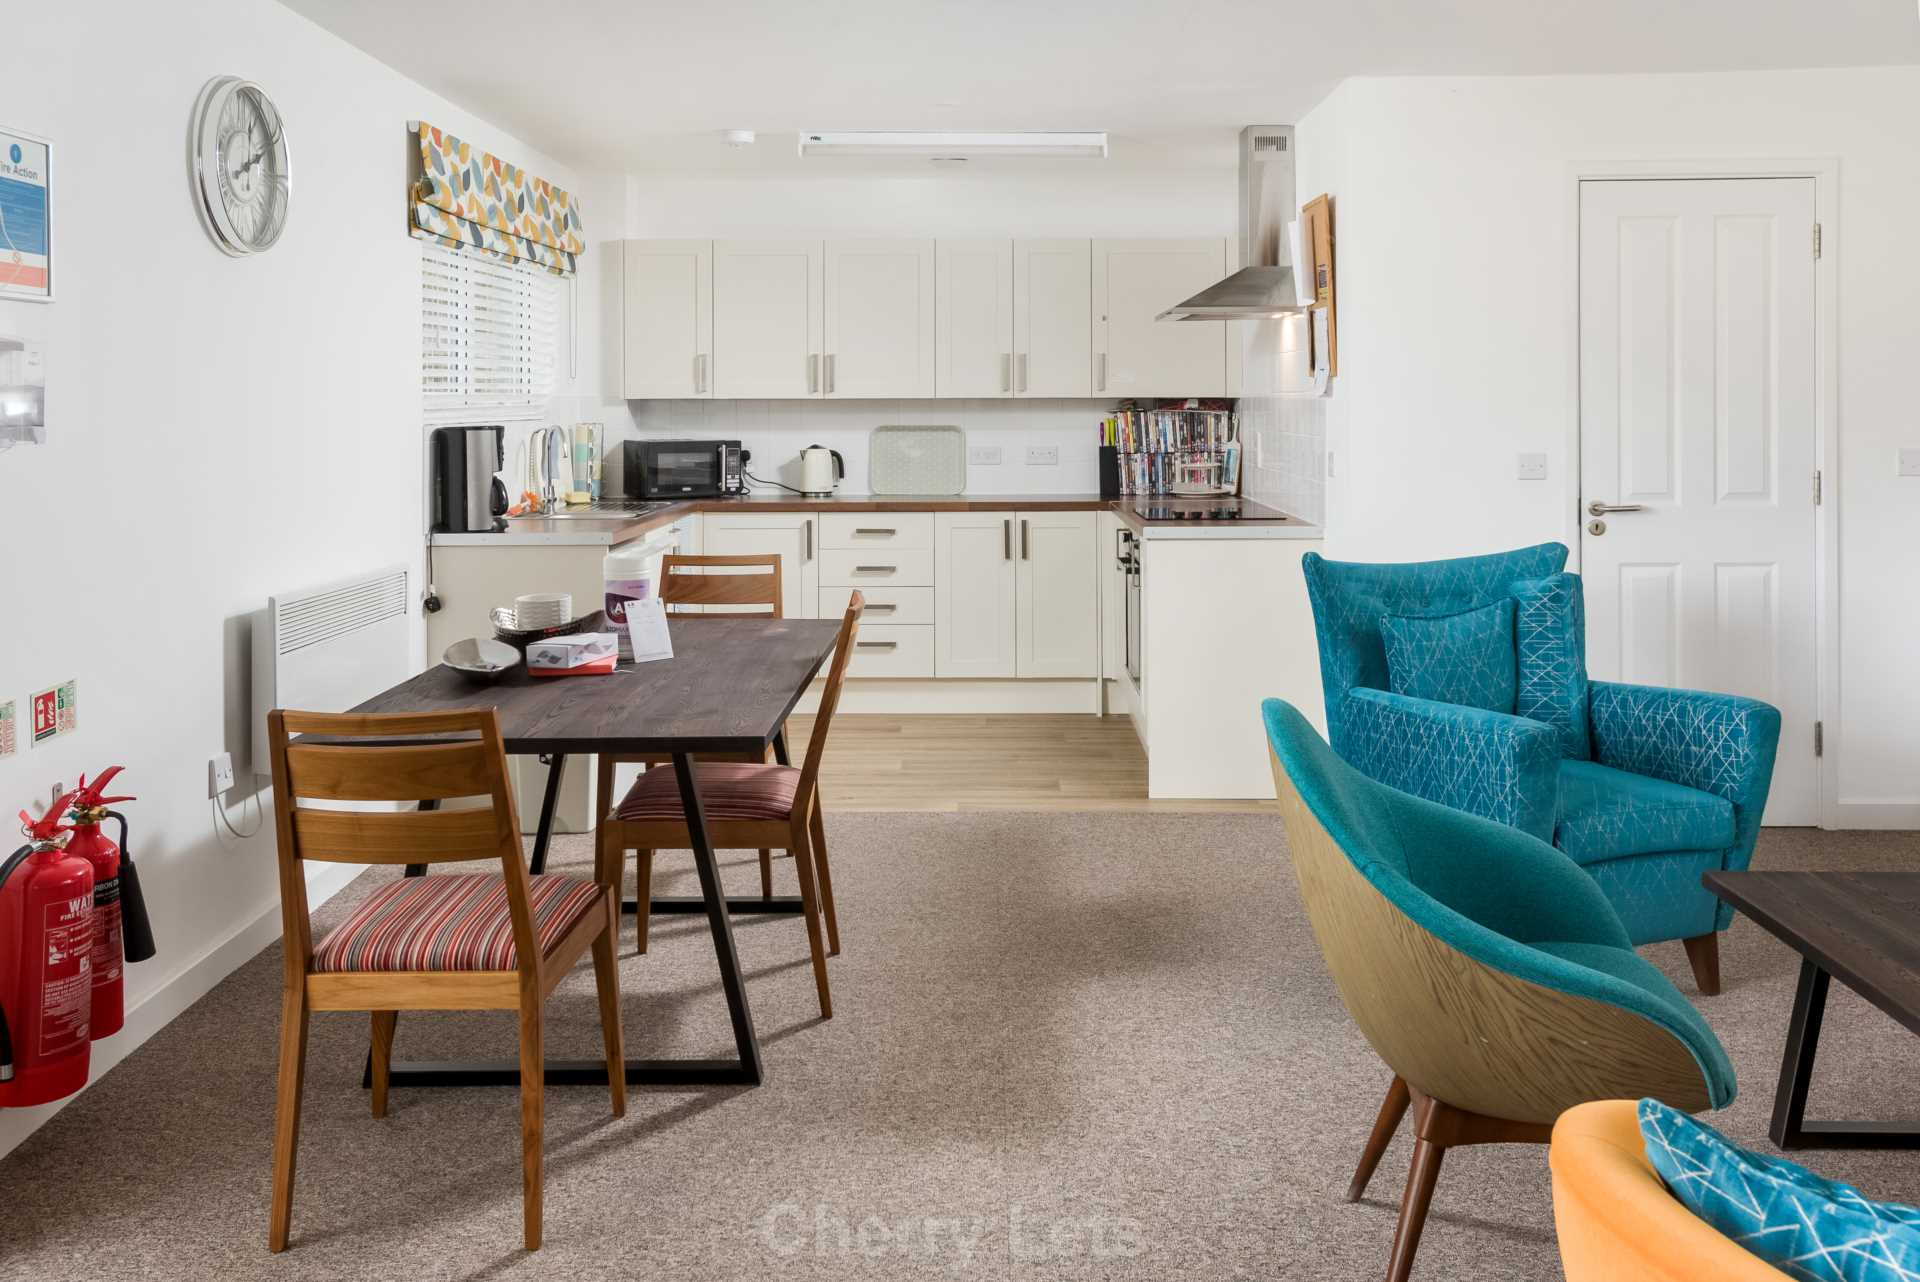 2 bed apartment to rent in Astrop Grange, Kings Sutton, OX17 17